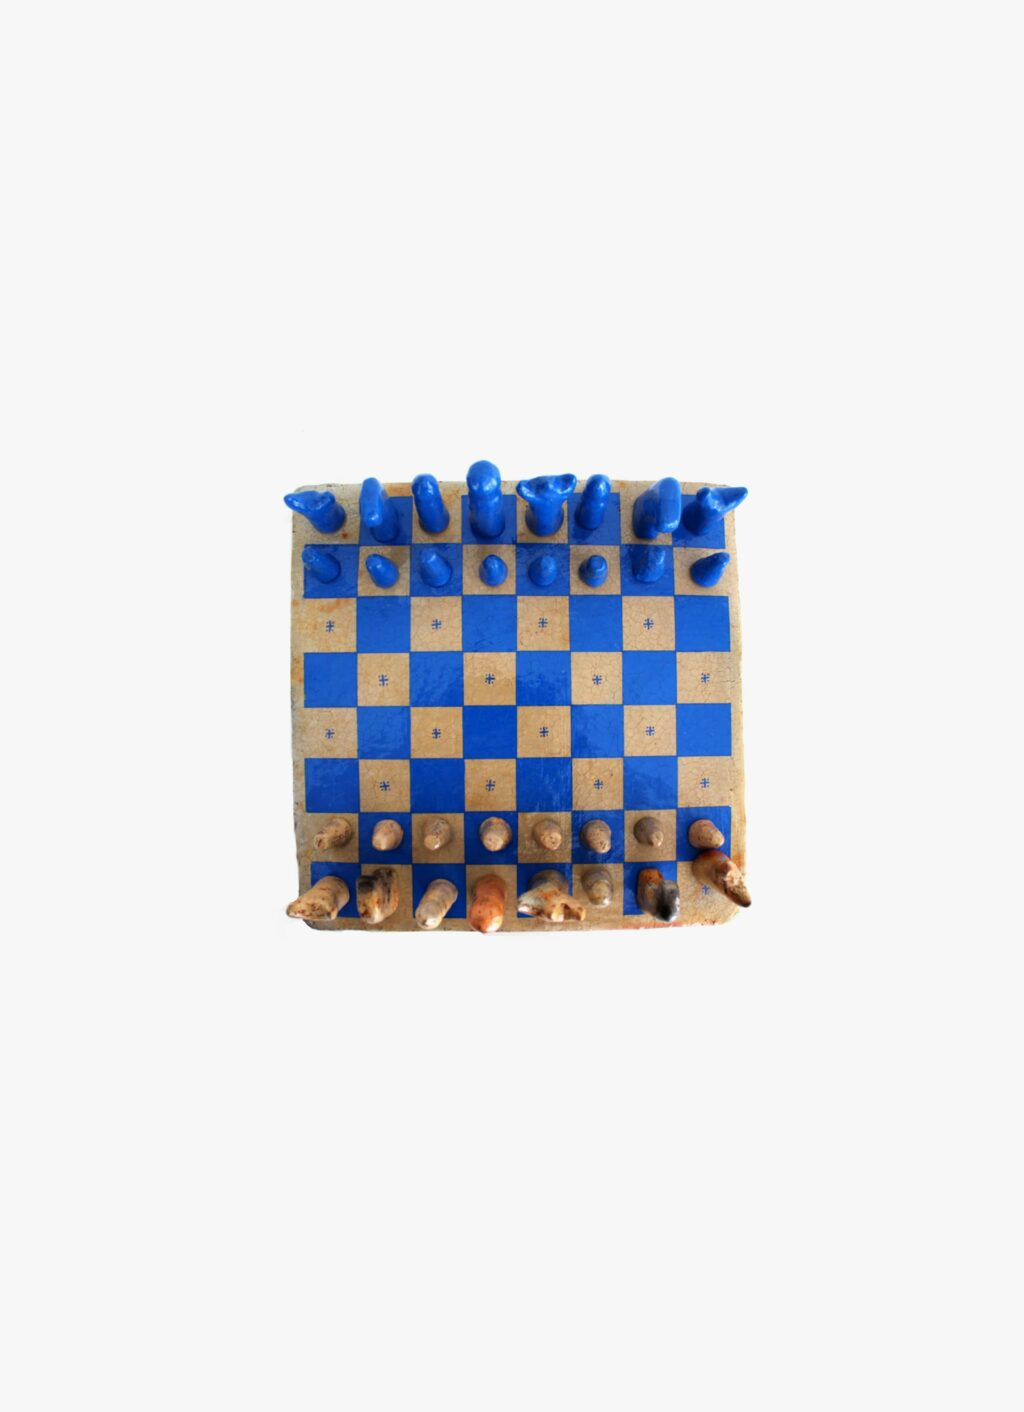 Flayou - Chich-Bich - Chess - Special edition - Neon blue